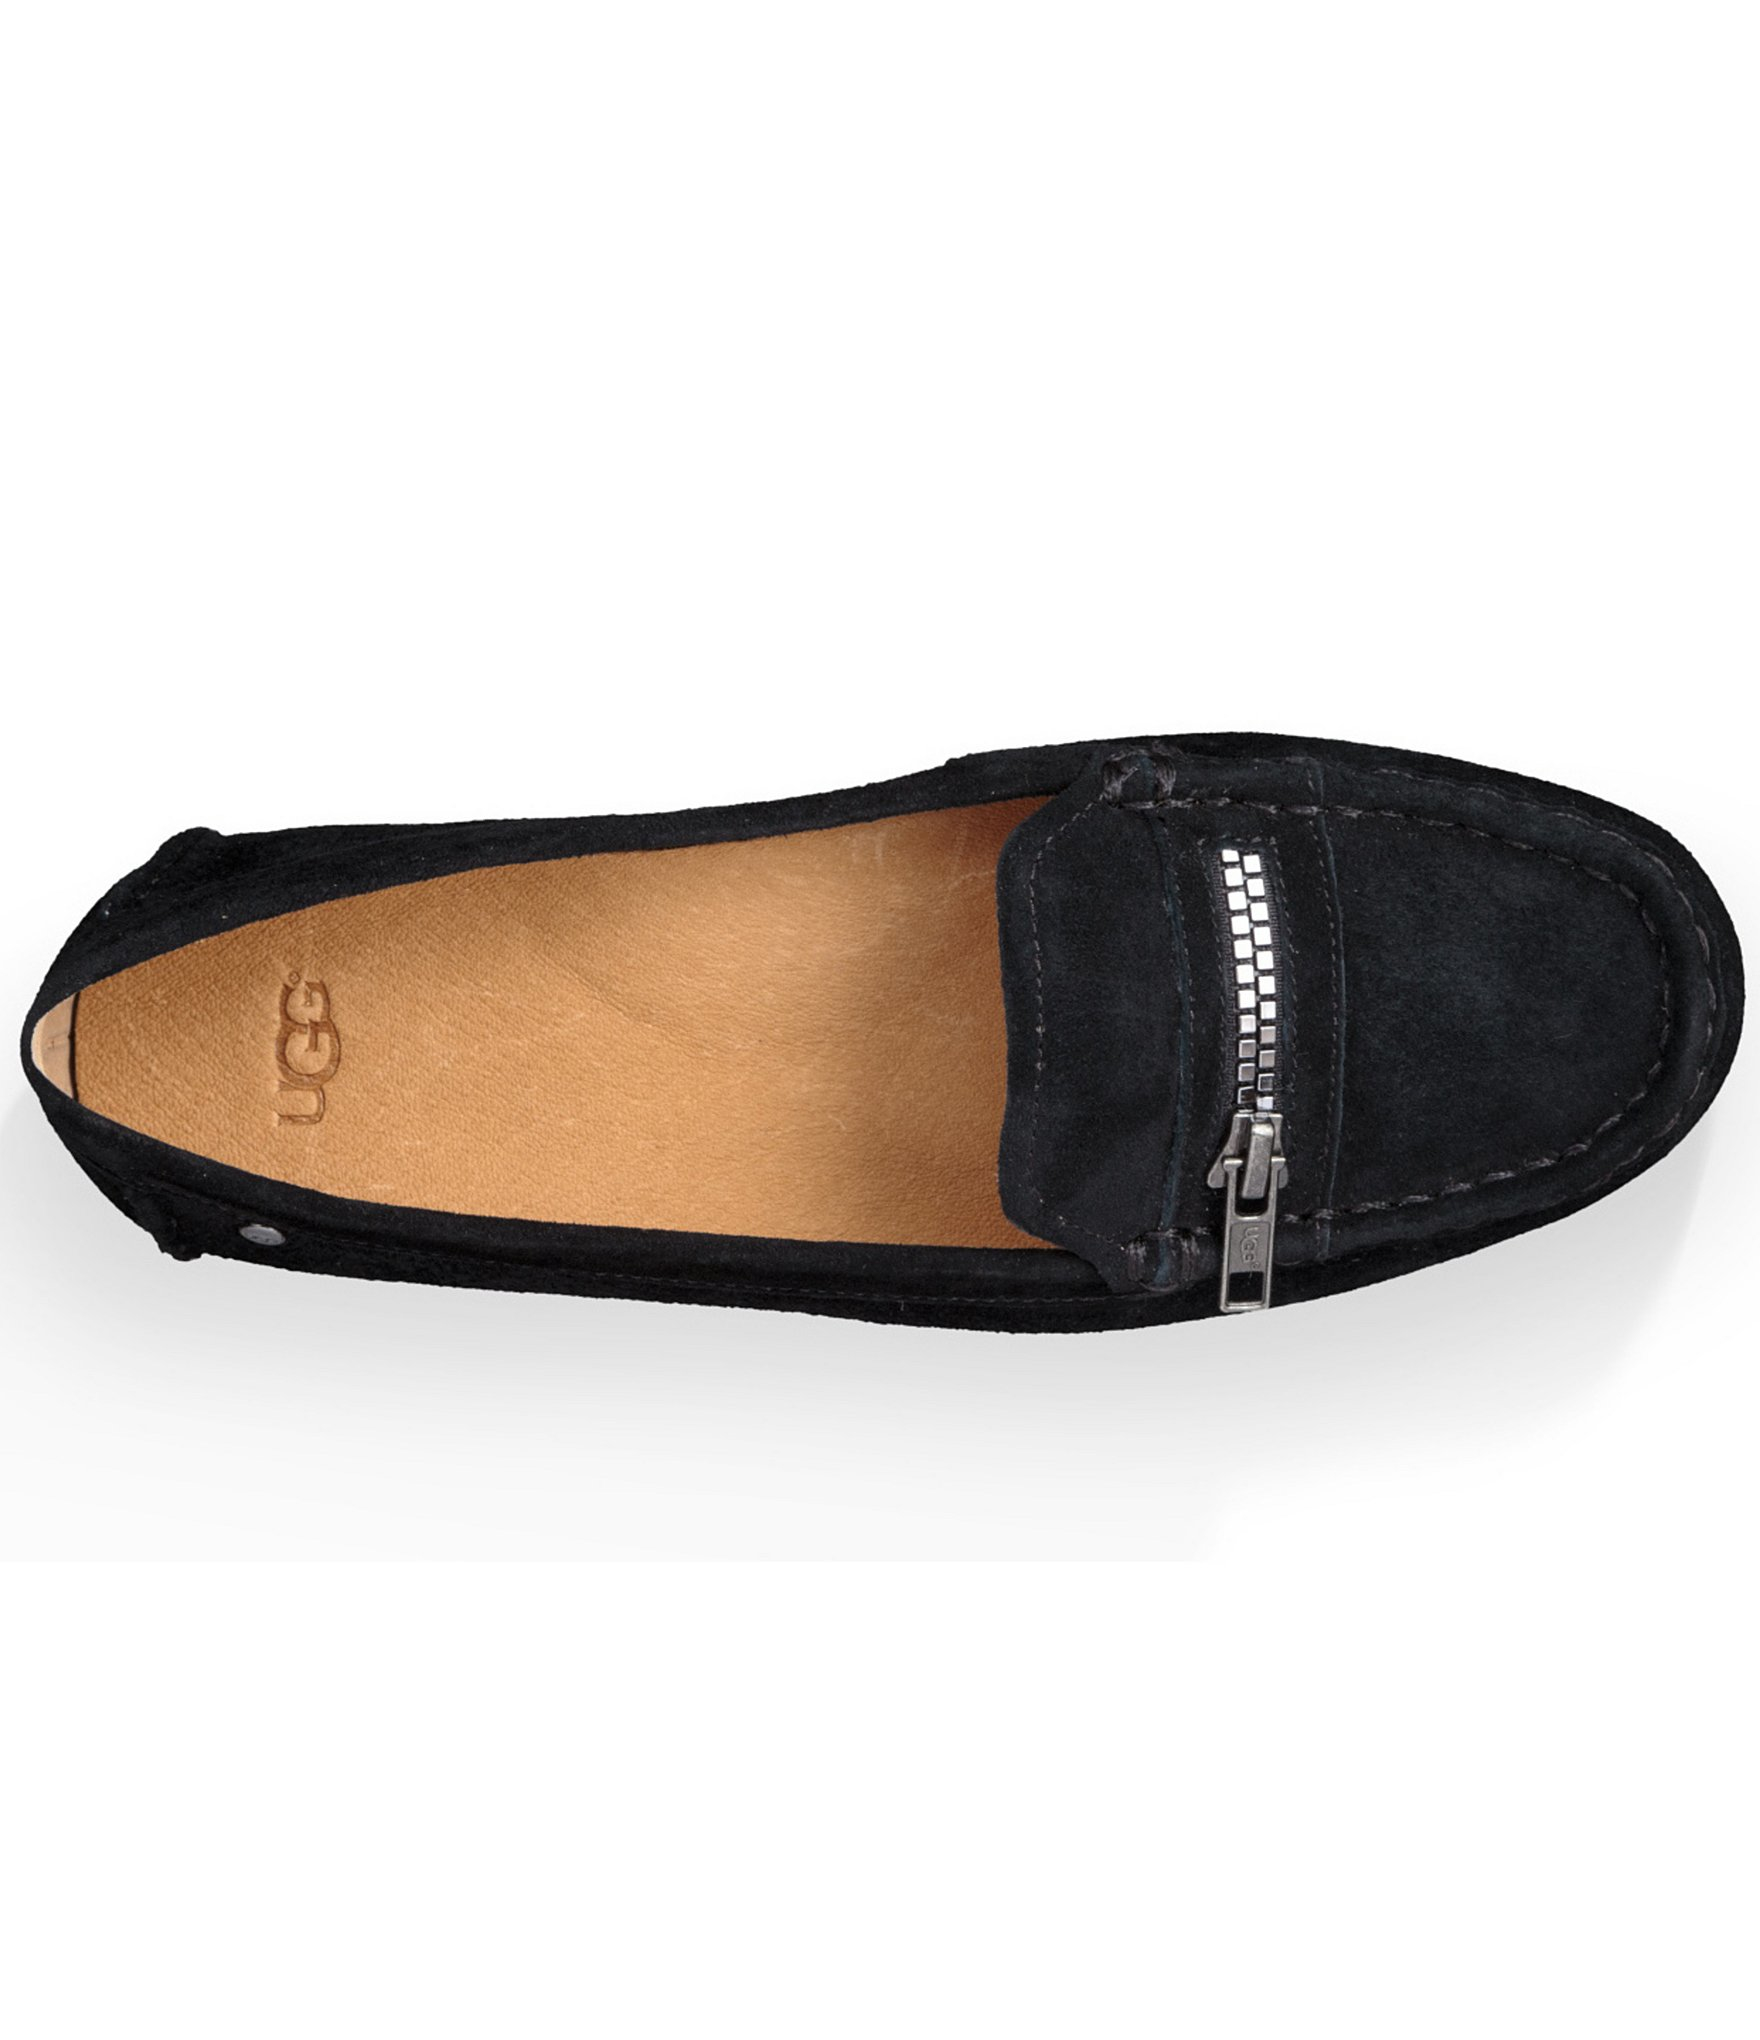 0242615adff Ugg Loafers Women Us - cheap watches mgc-gas.com